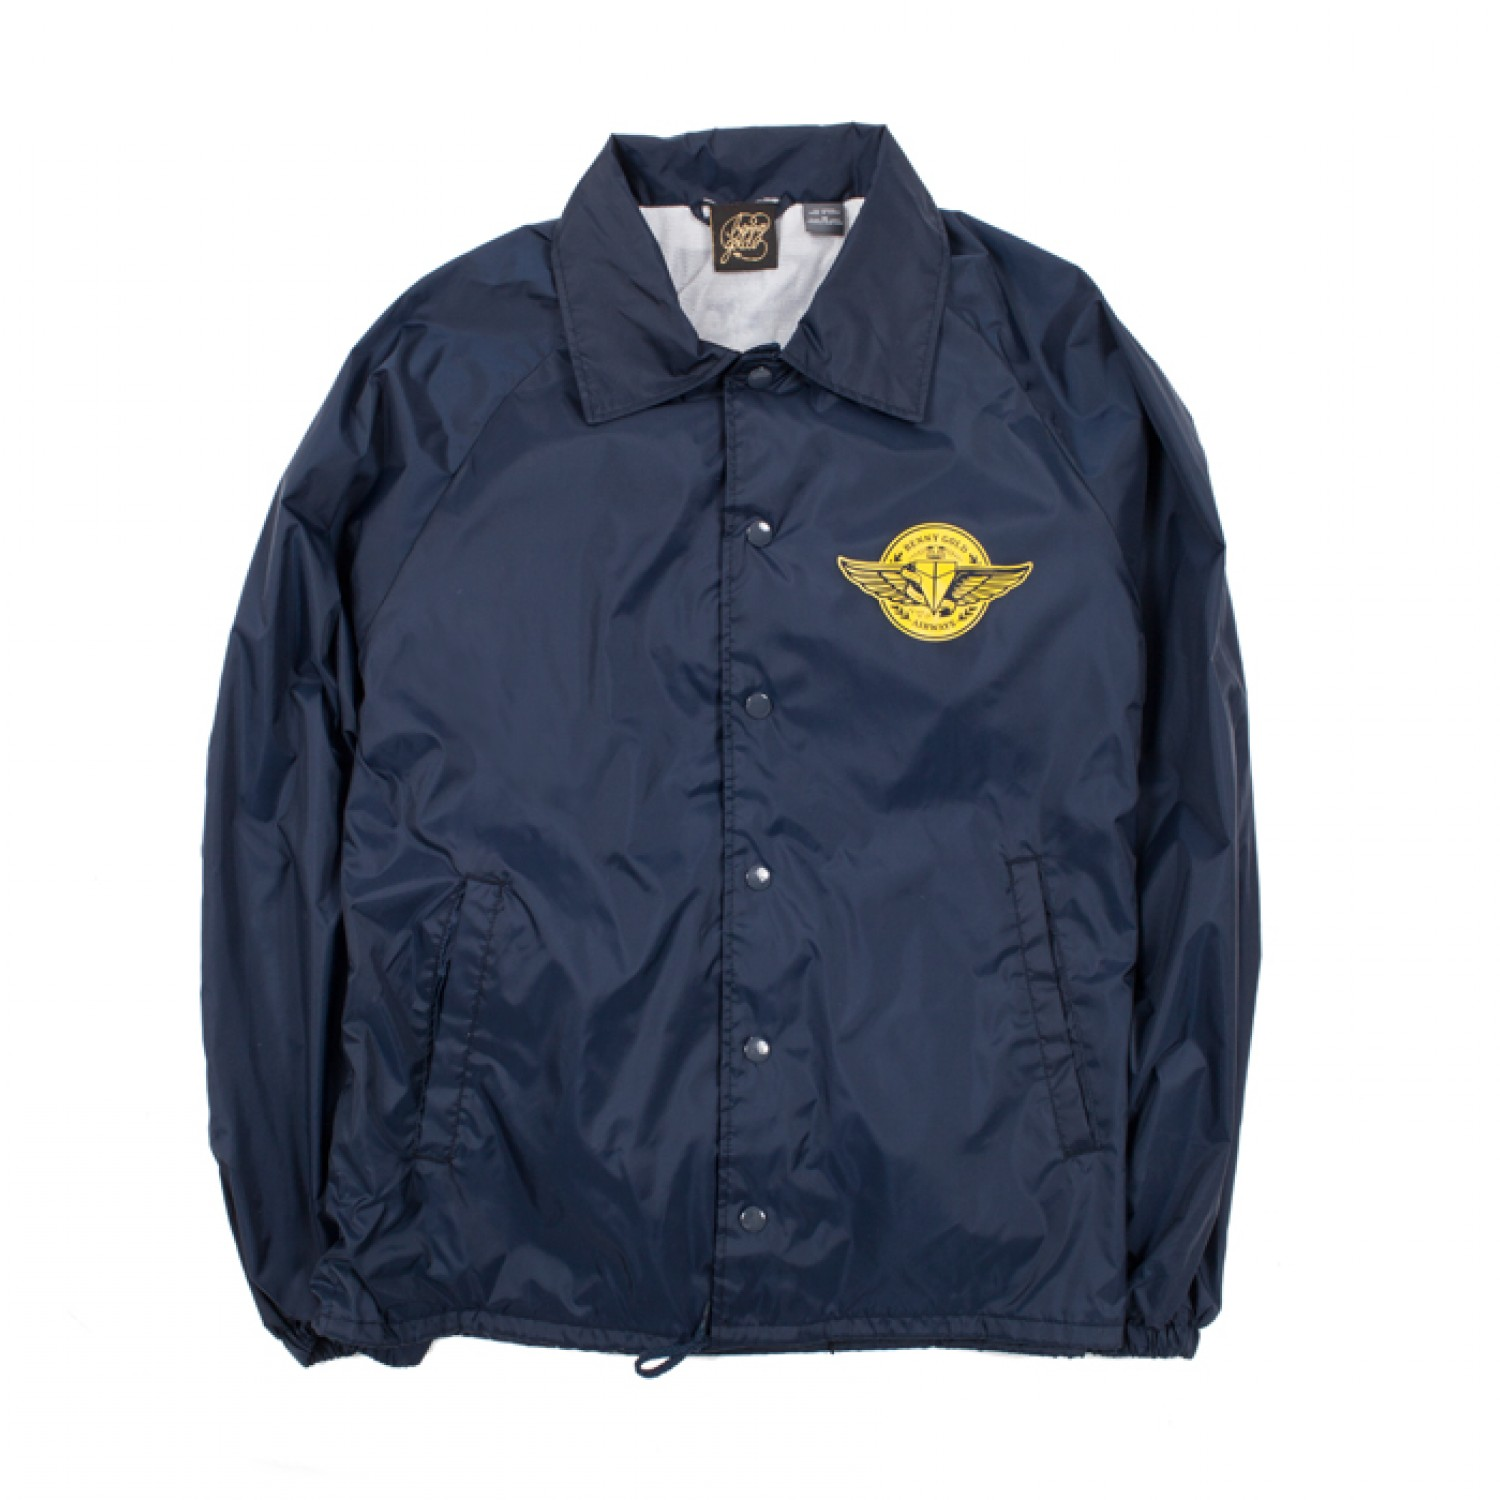 Airways Navy Coach Jacket - Fleece/Jackets - Shop | Benny Gold